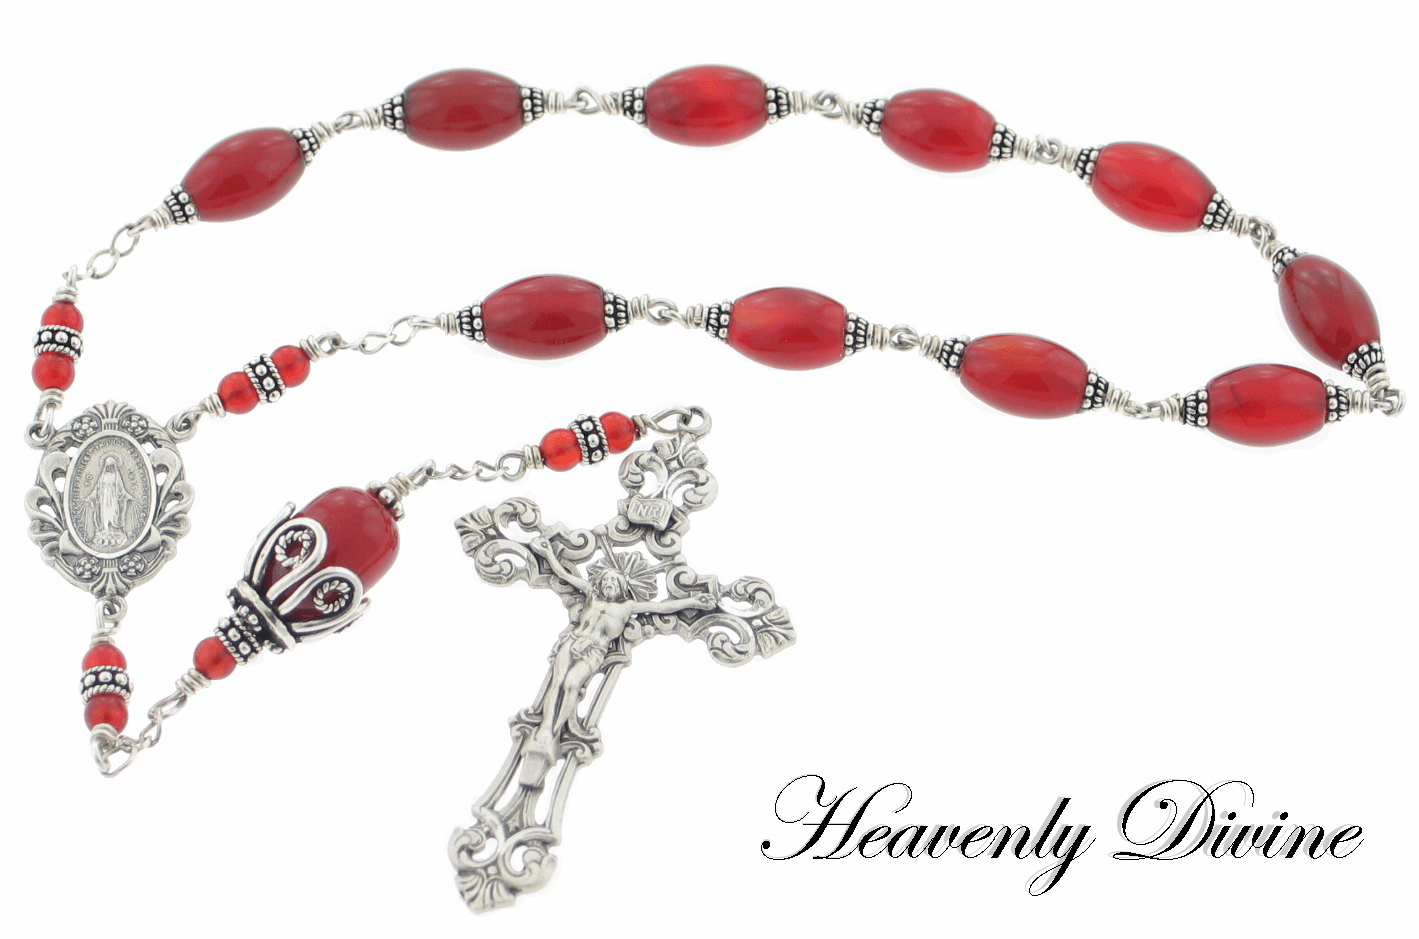 Heavenly Divine Rosaries Wire-Wrapped Carnelian & Sterling Silver Pocket Rosary